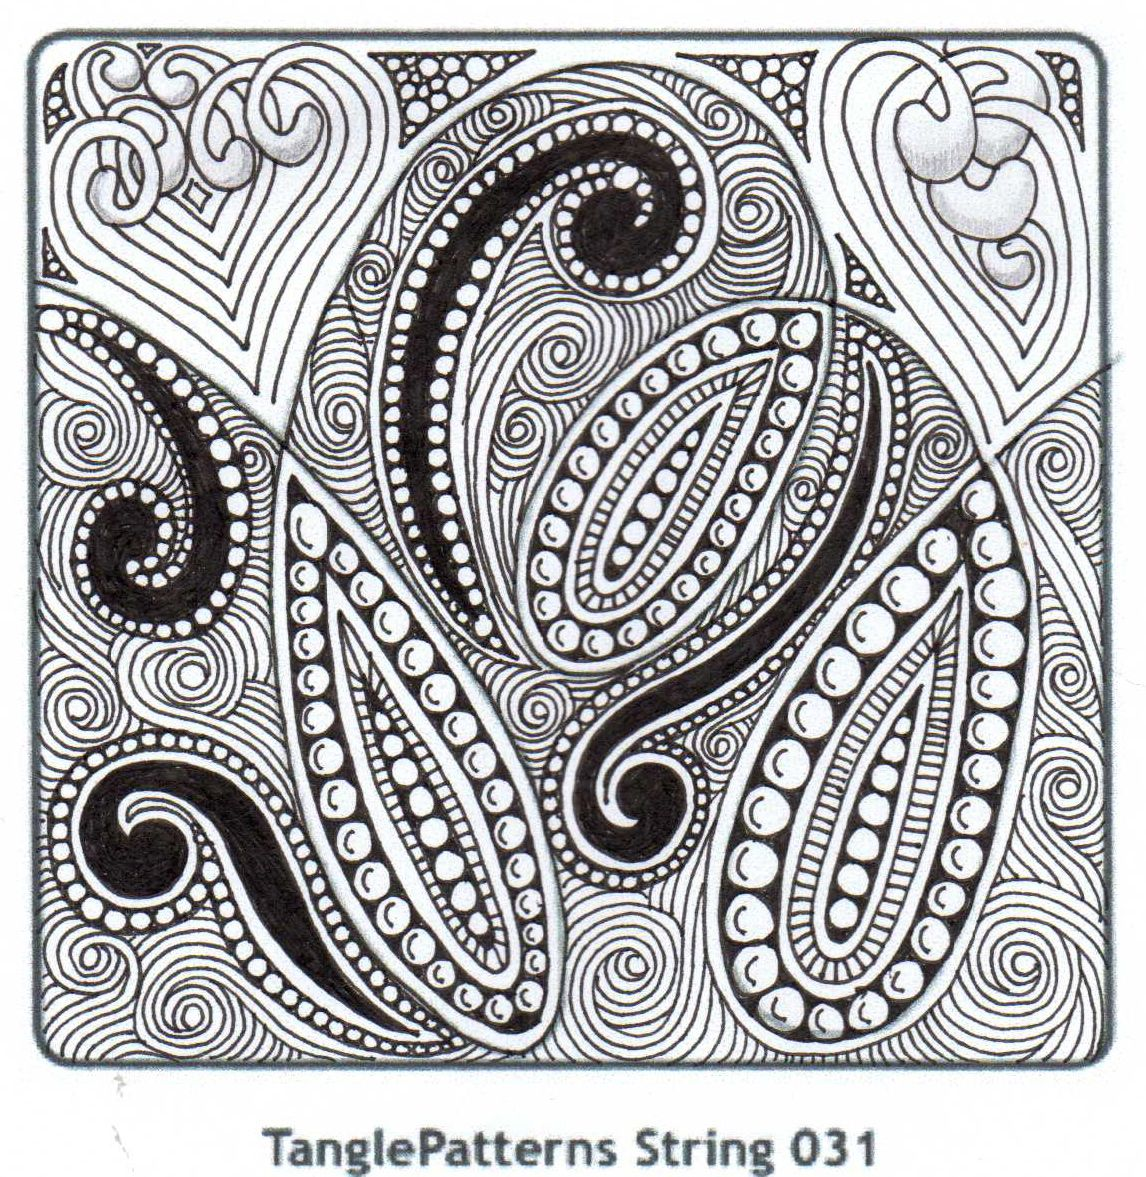 Banar designs tangle patterns string challenge colour it